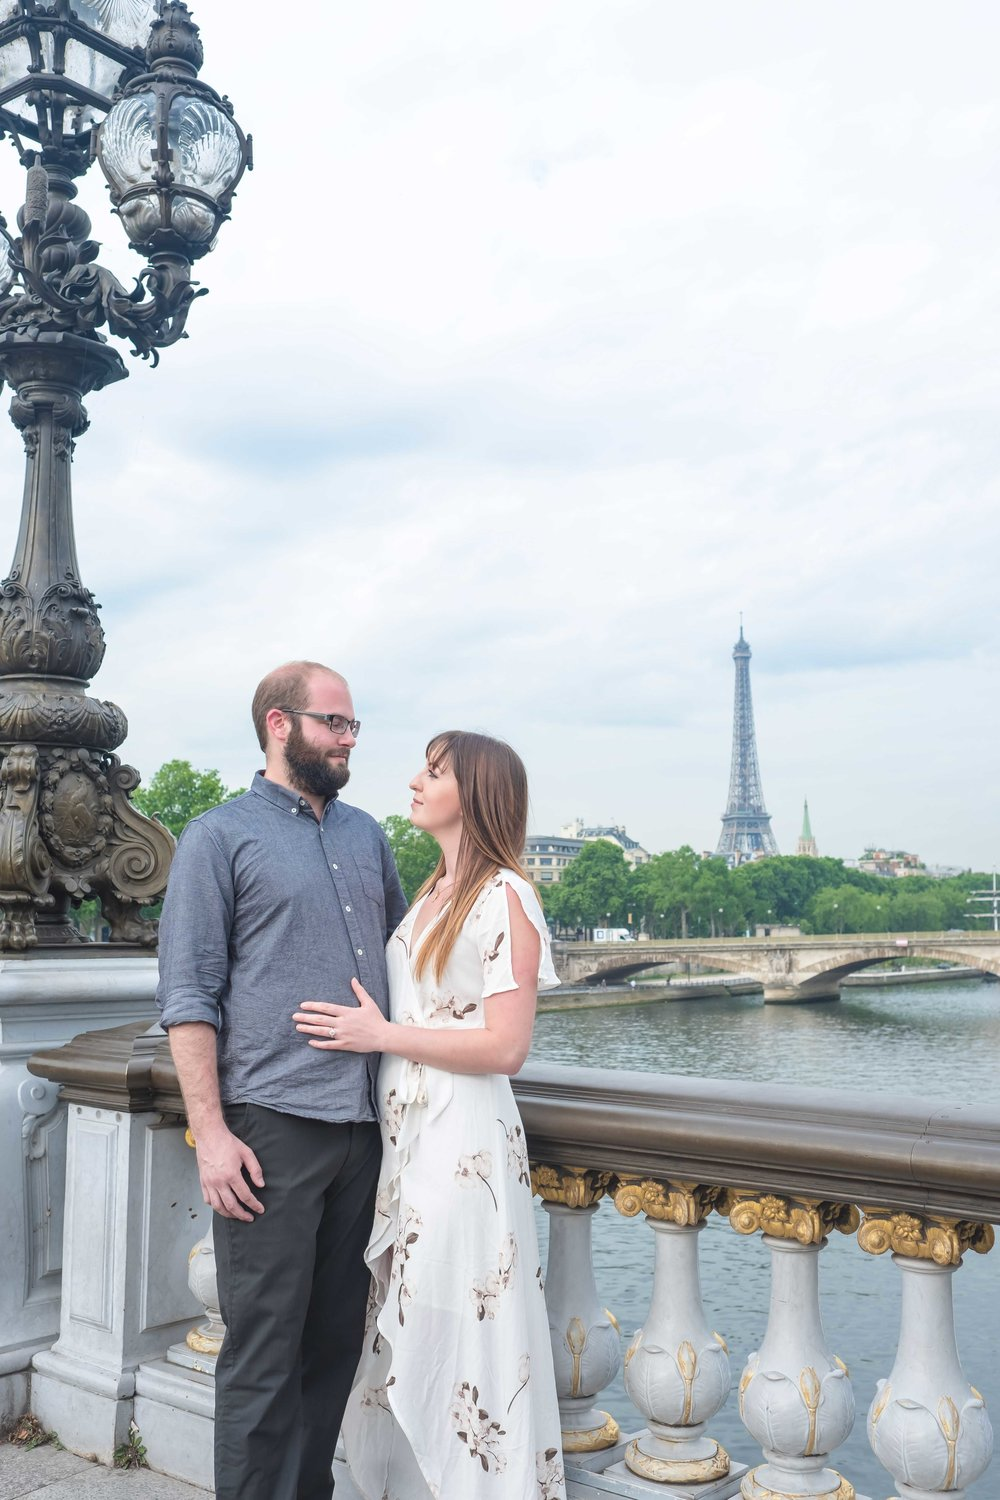 ryan & jenelle - Ryan and Jenelle were celebrating their engagement in Paris, visiting for the first time. This friendly and pretty couple from Canada were a joy to spend the morning with. We started our session on the beautiful bridge of Alexandre and made our way through the green Tuileries Gardens, to the courtyard of the Louvre, visited the royal gardens and ended on the Pont des Arts. It was a really fun and relaxing morning!See more images here